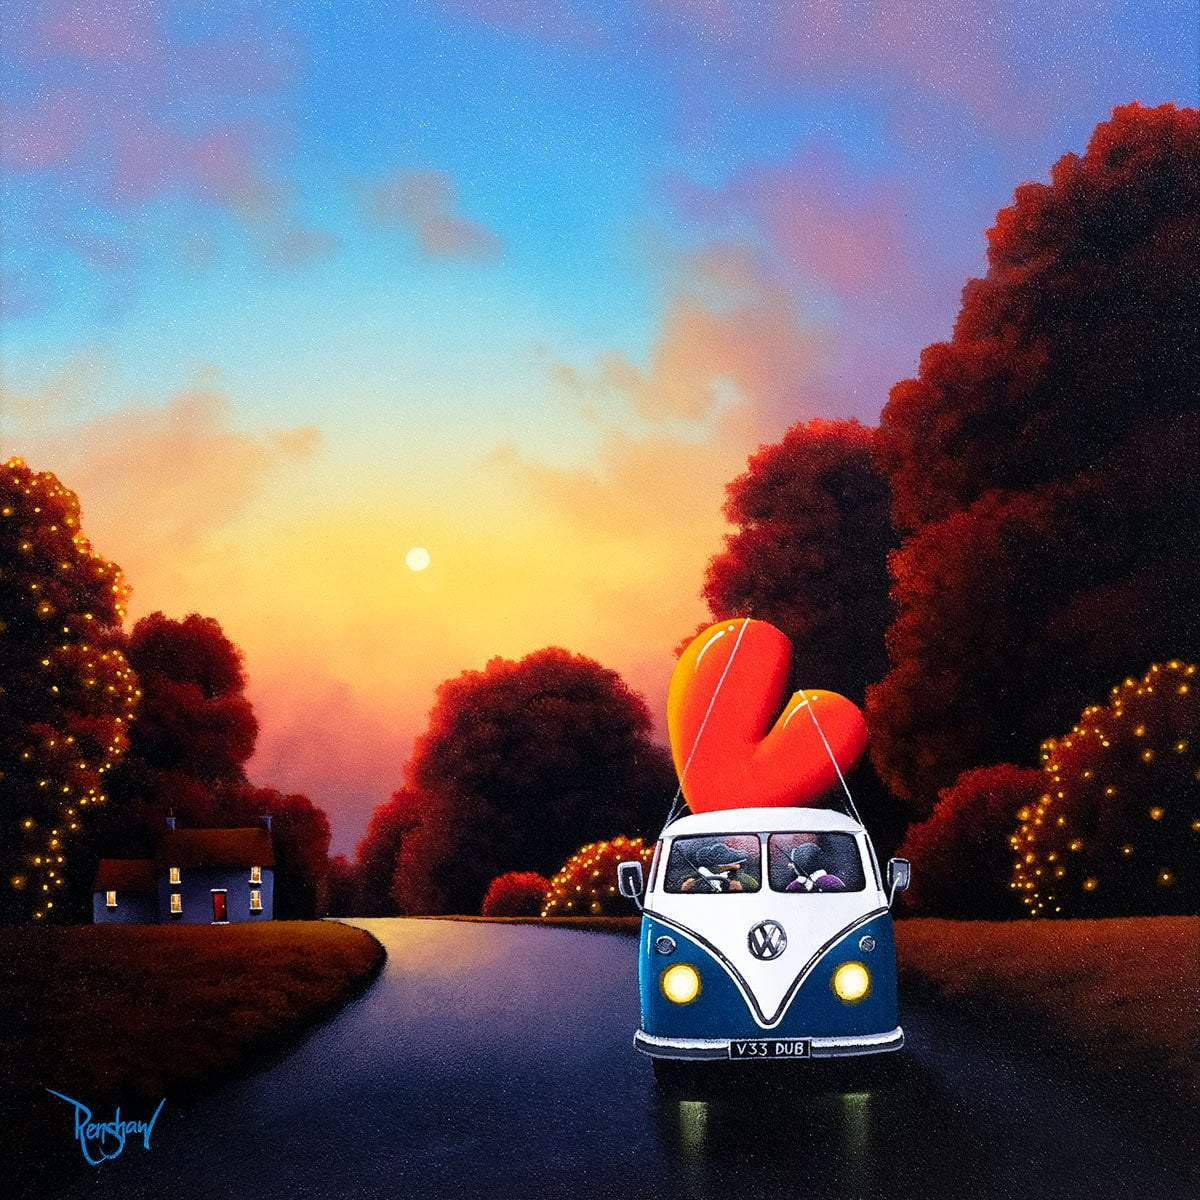 Taking Love With Us - Original David Renshaw Framed